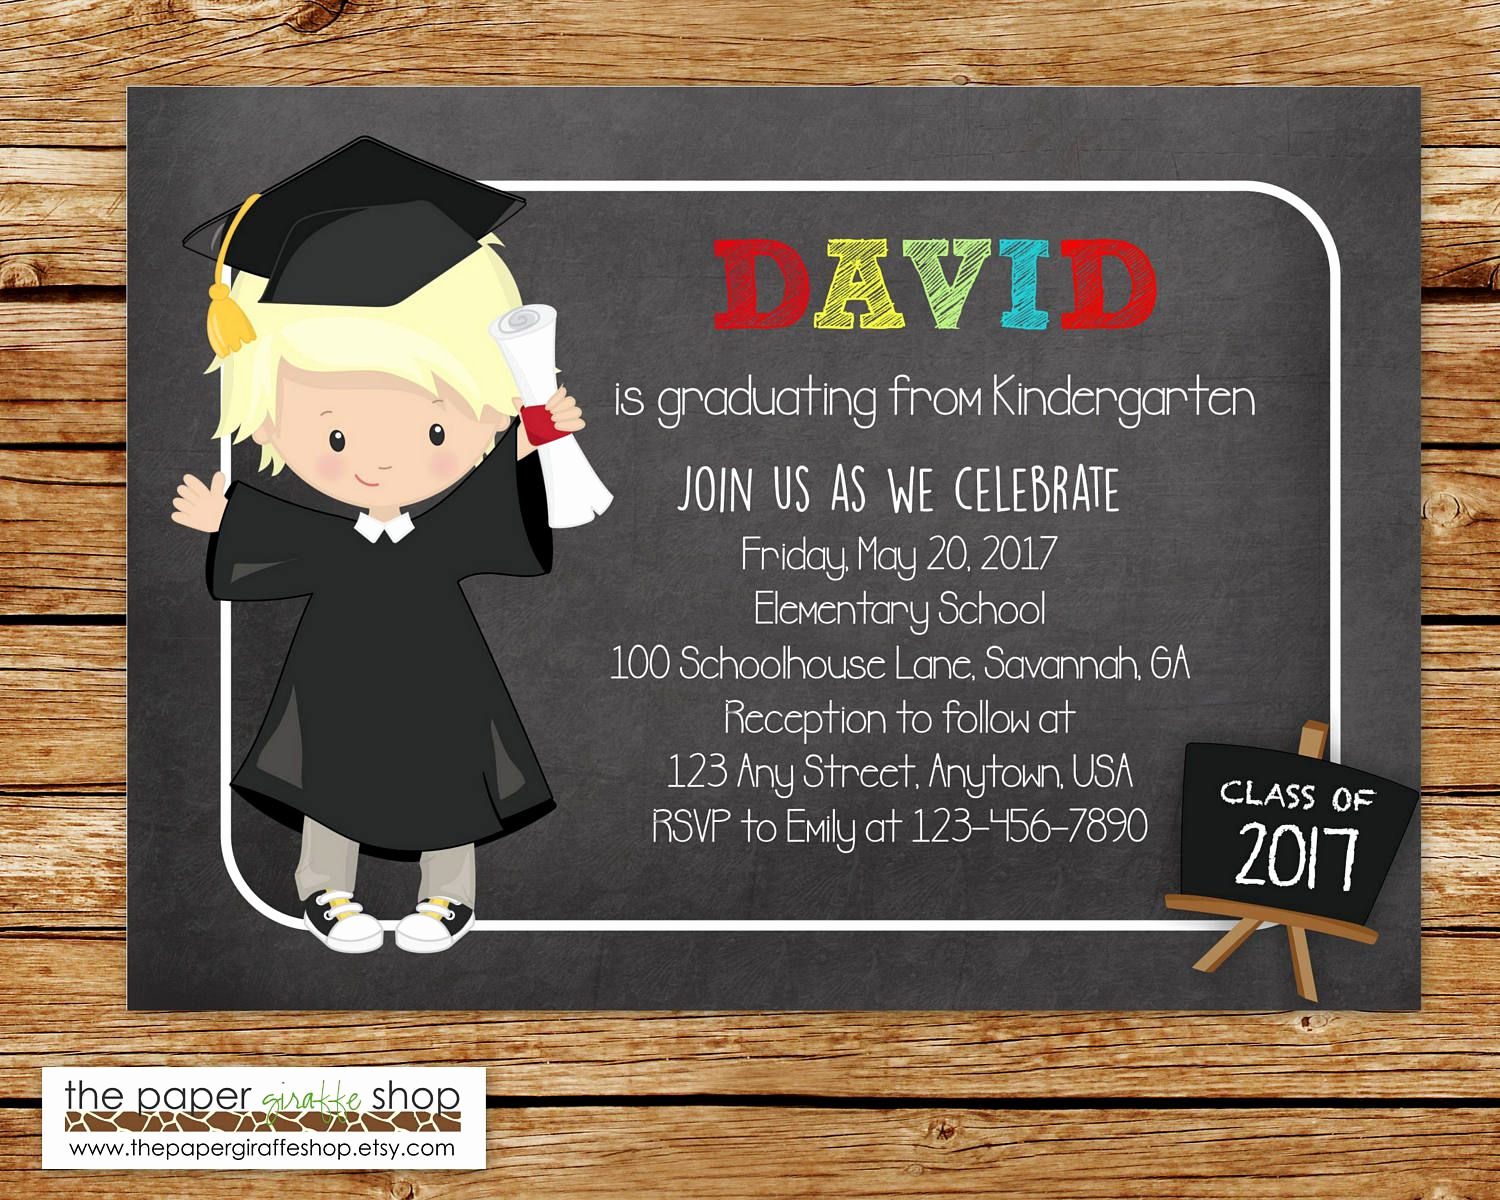 Preschool Graduation Invitation Ideas Elegant Kindergarten Graduation Invitation